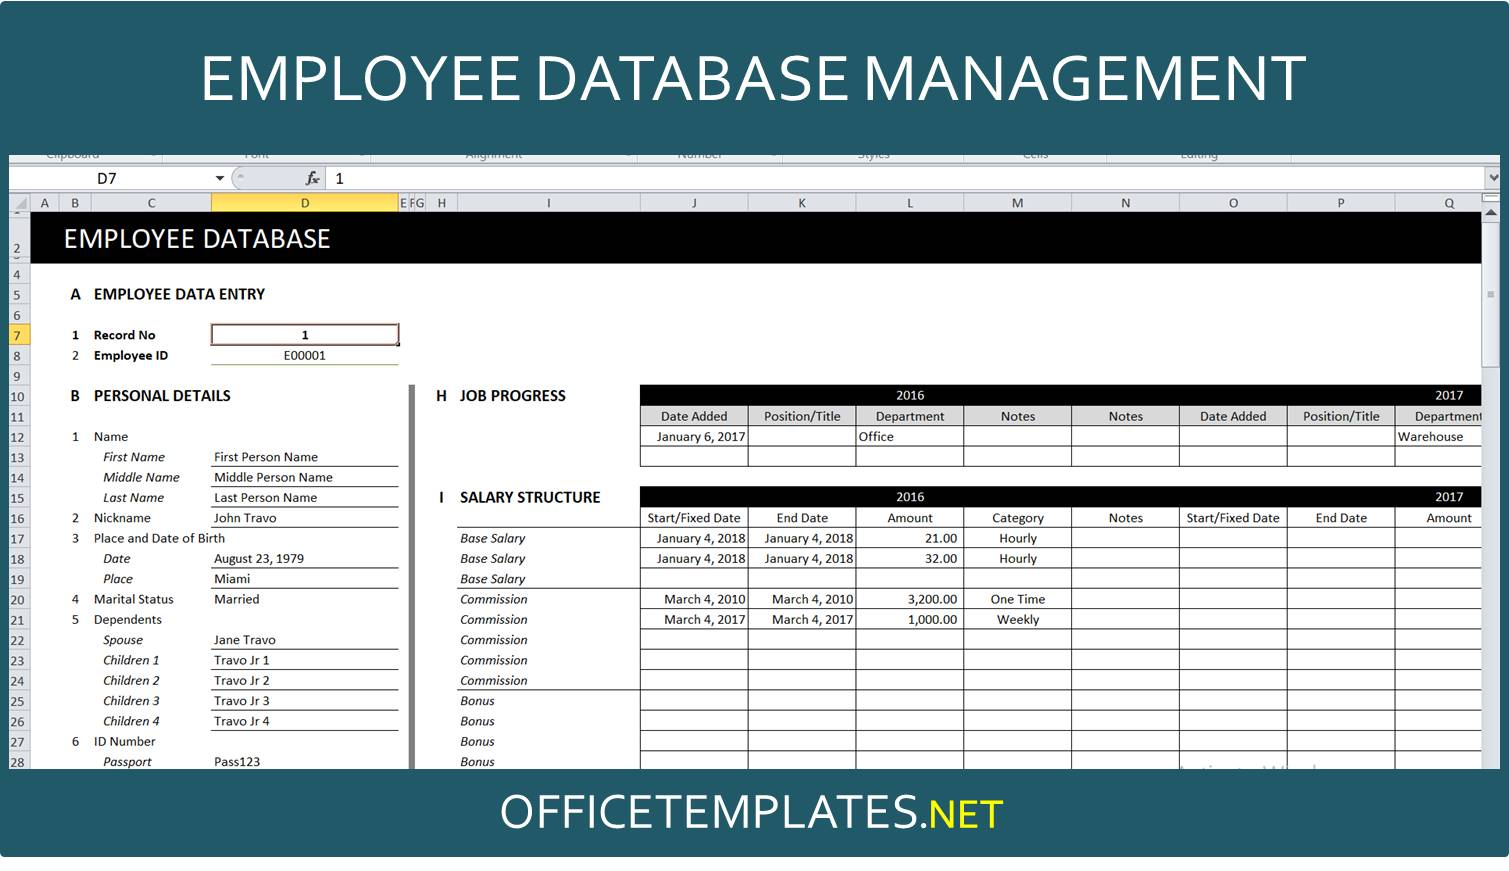 Full Size of Employee Database Management Spreadsheet Officetemplates Net Excel Template Double Entry